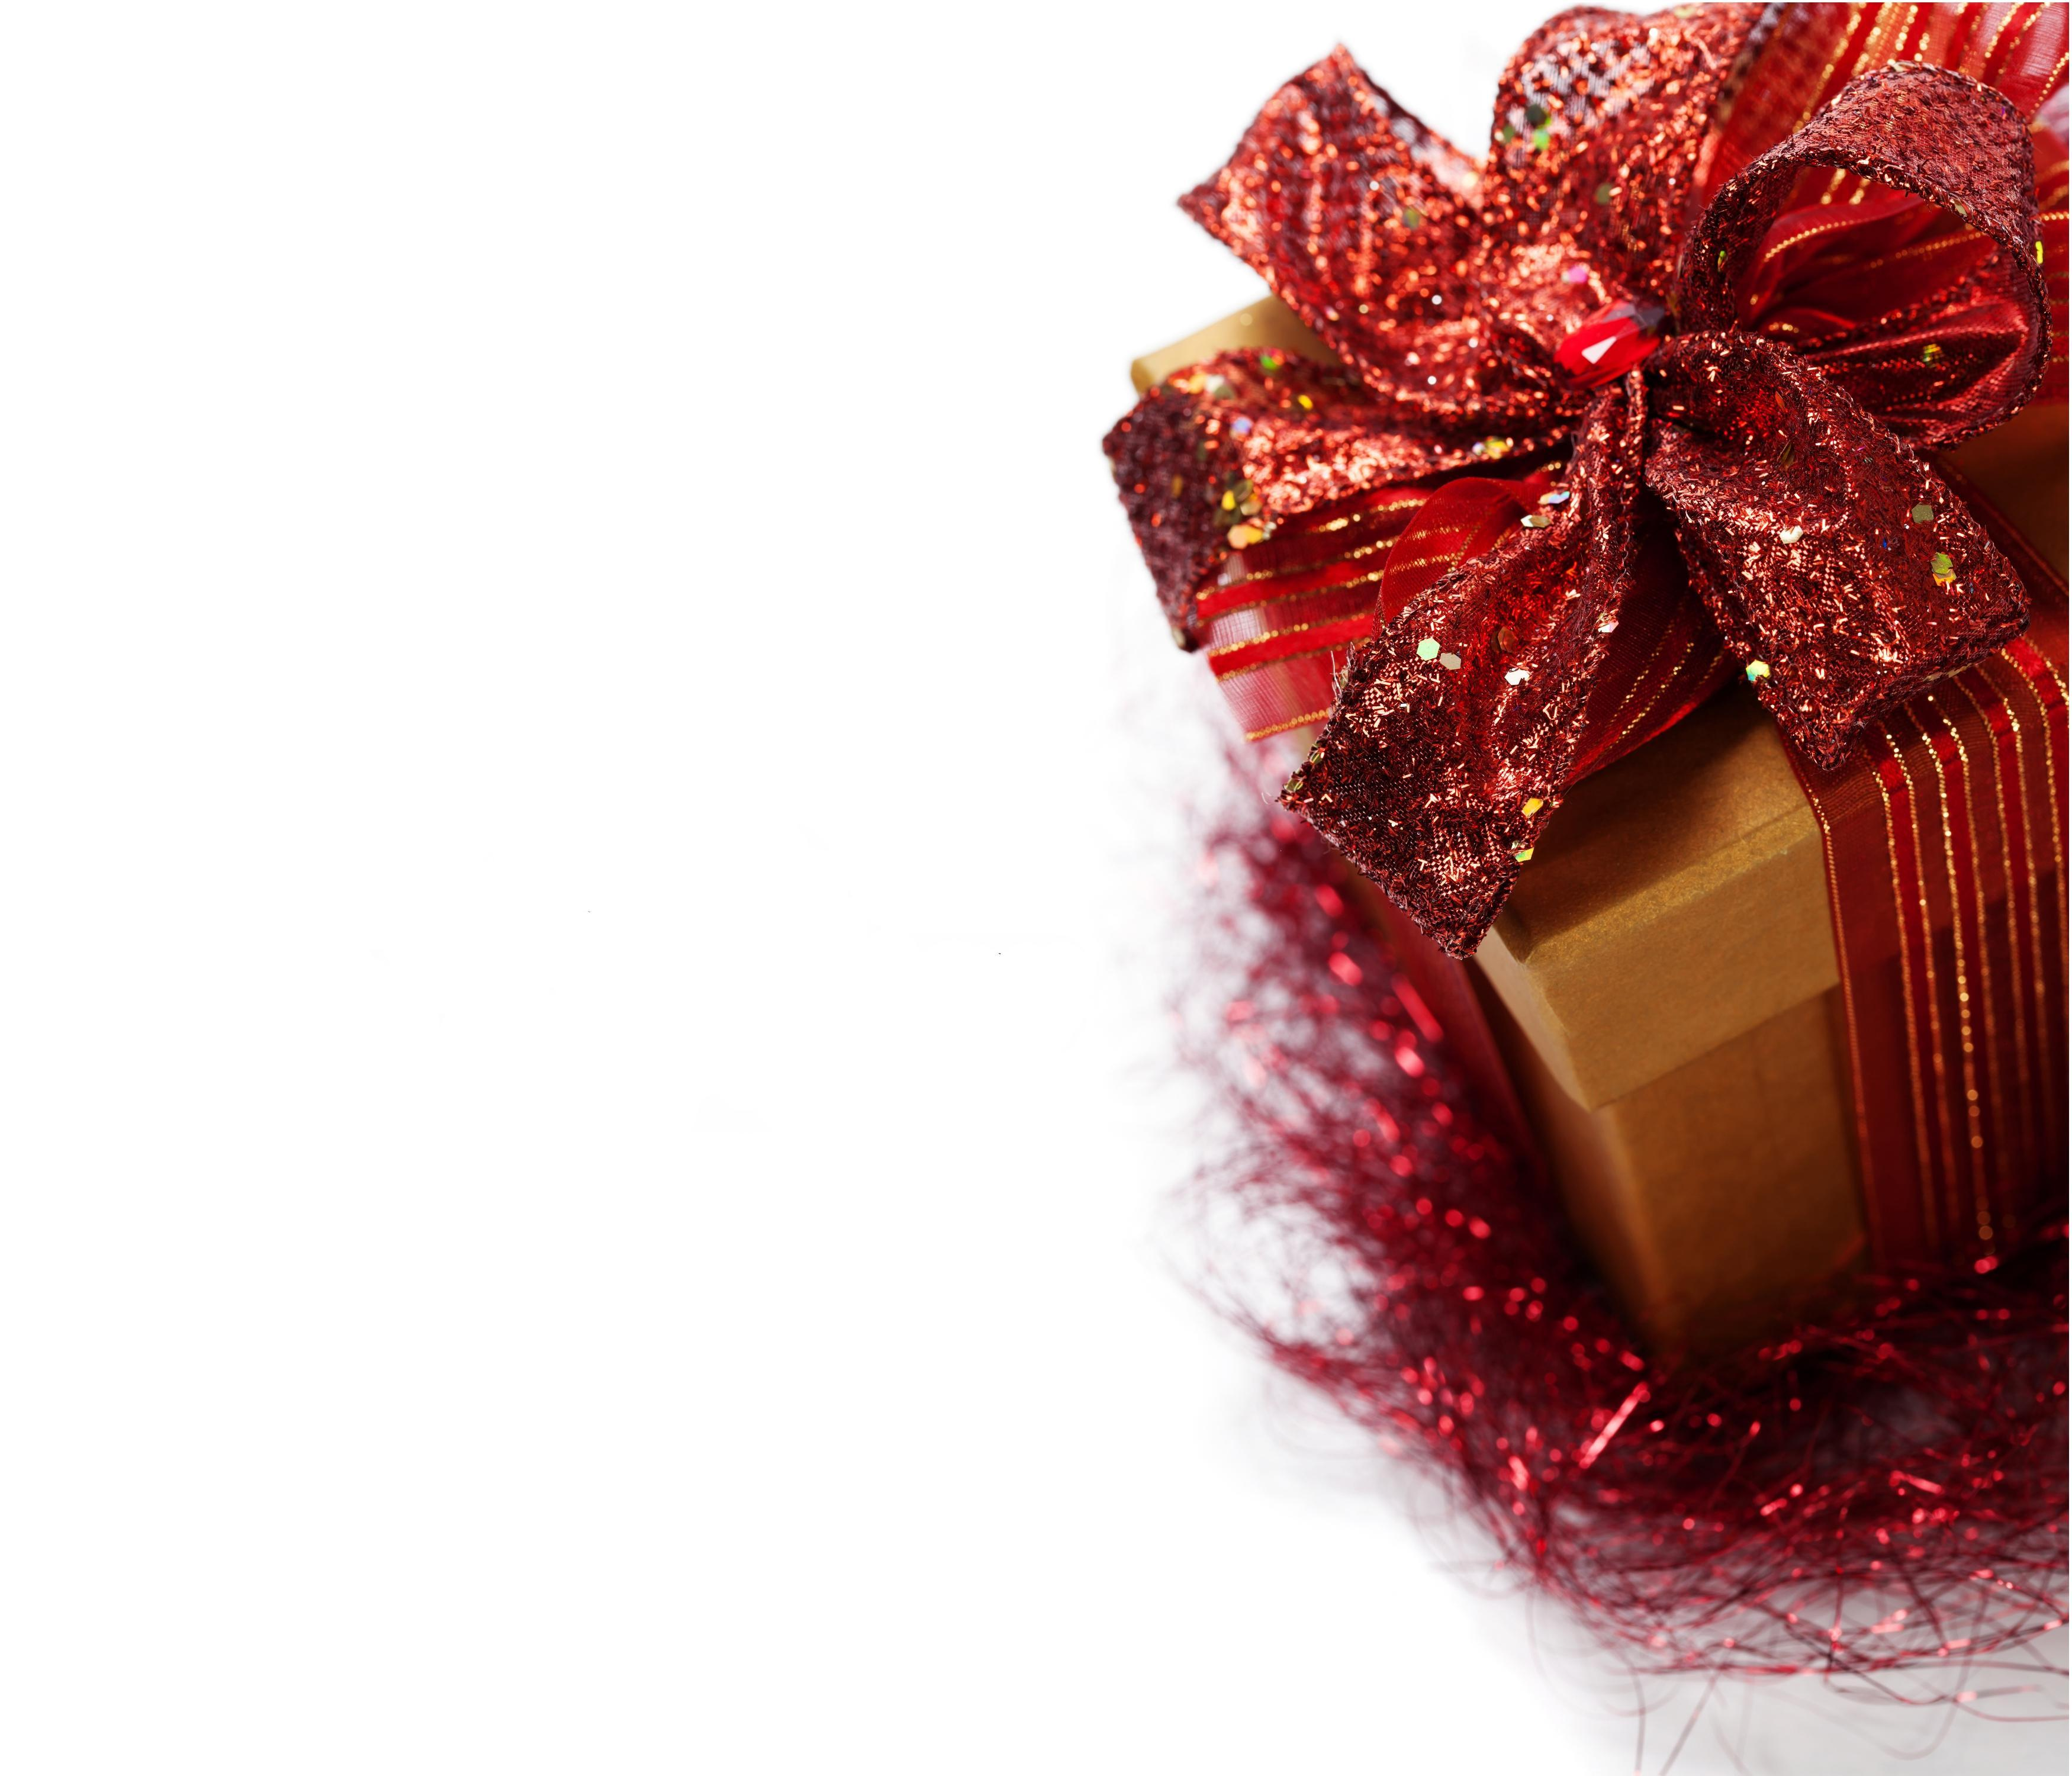 Christmas Gift Background: Christmas Present Wallpapers